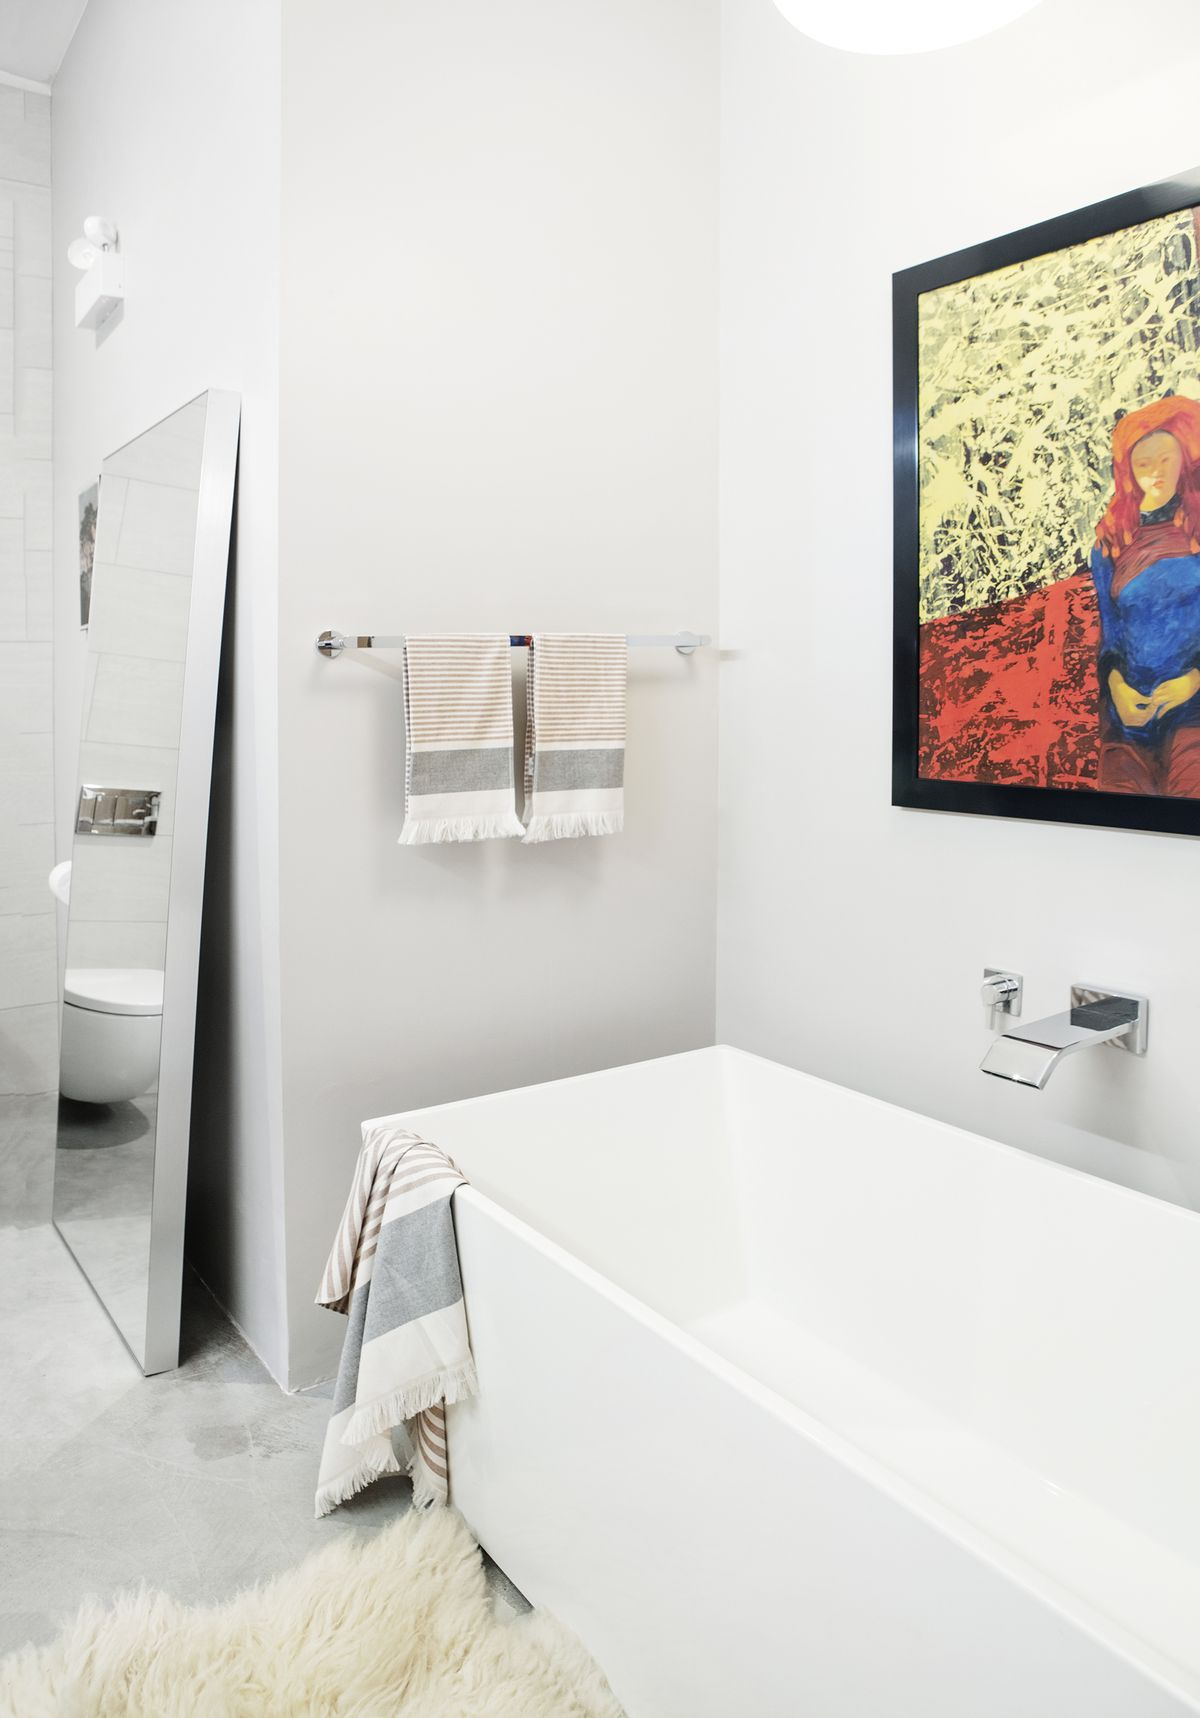 A bathroom. There is a white bathtub. Above the bathtub is a colorful work of art. There is a free standing mirror leaning against one of the walls. The walls are painted white.